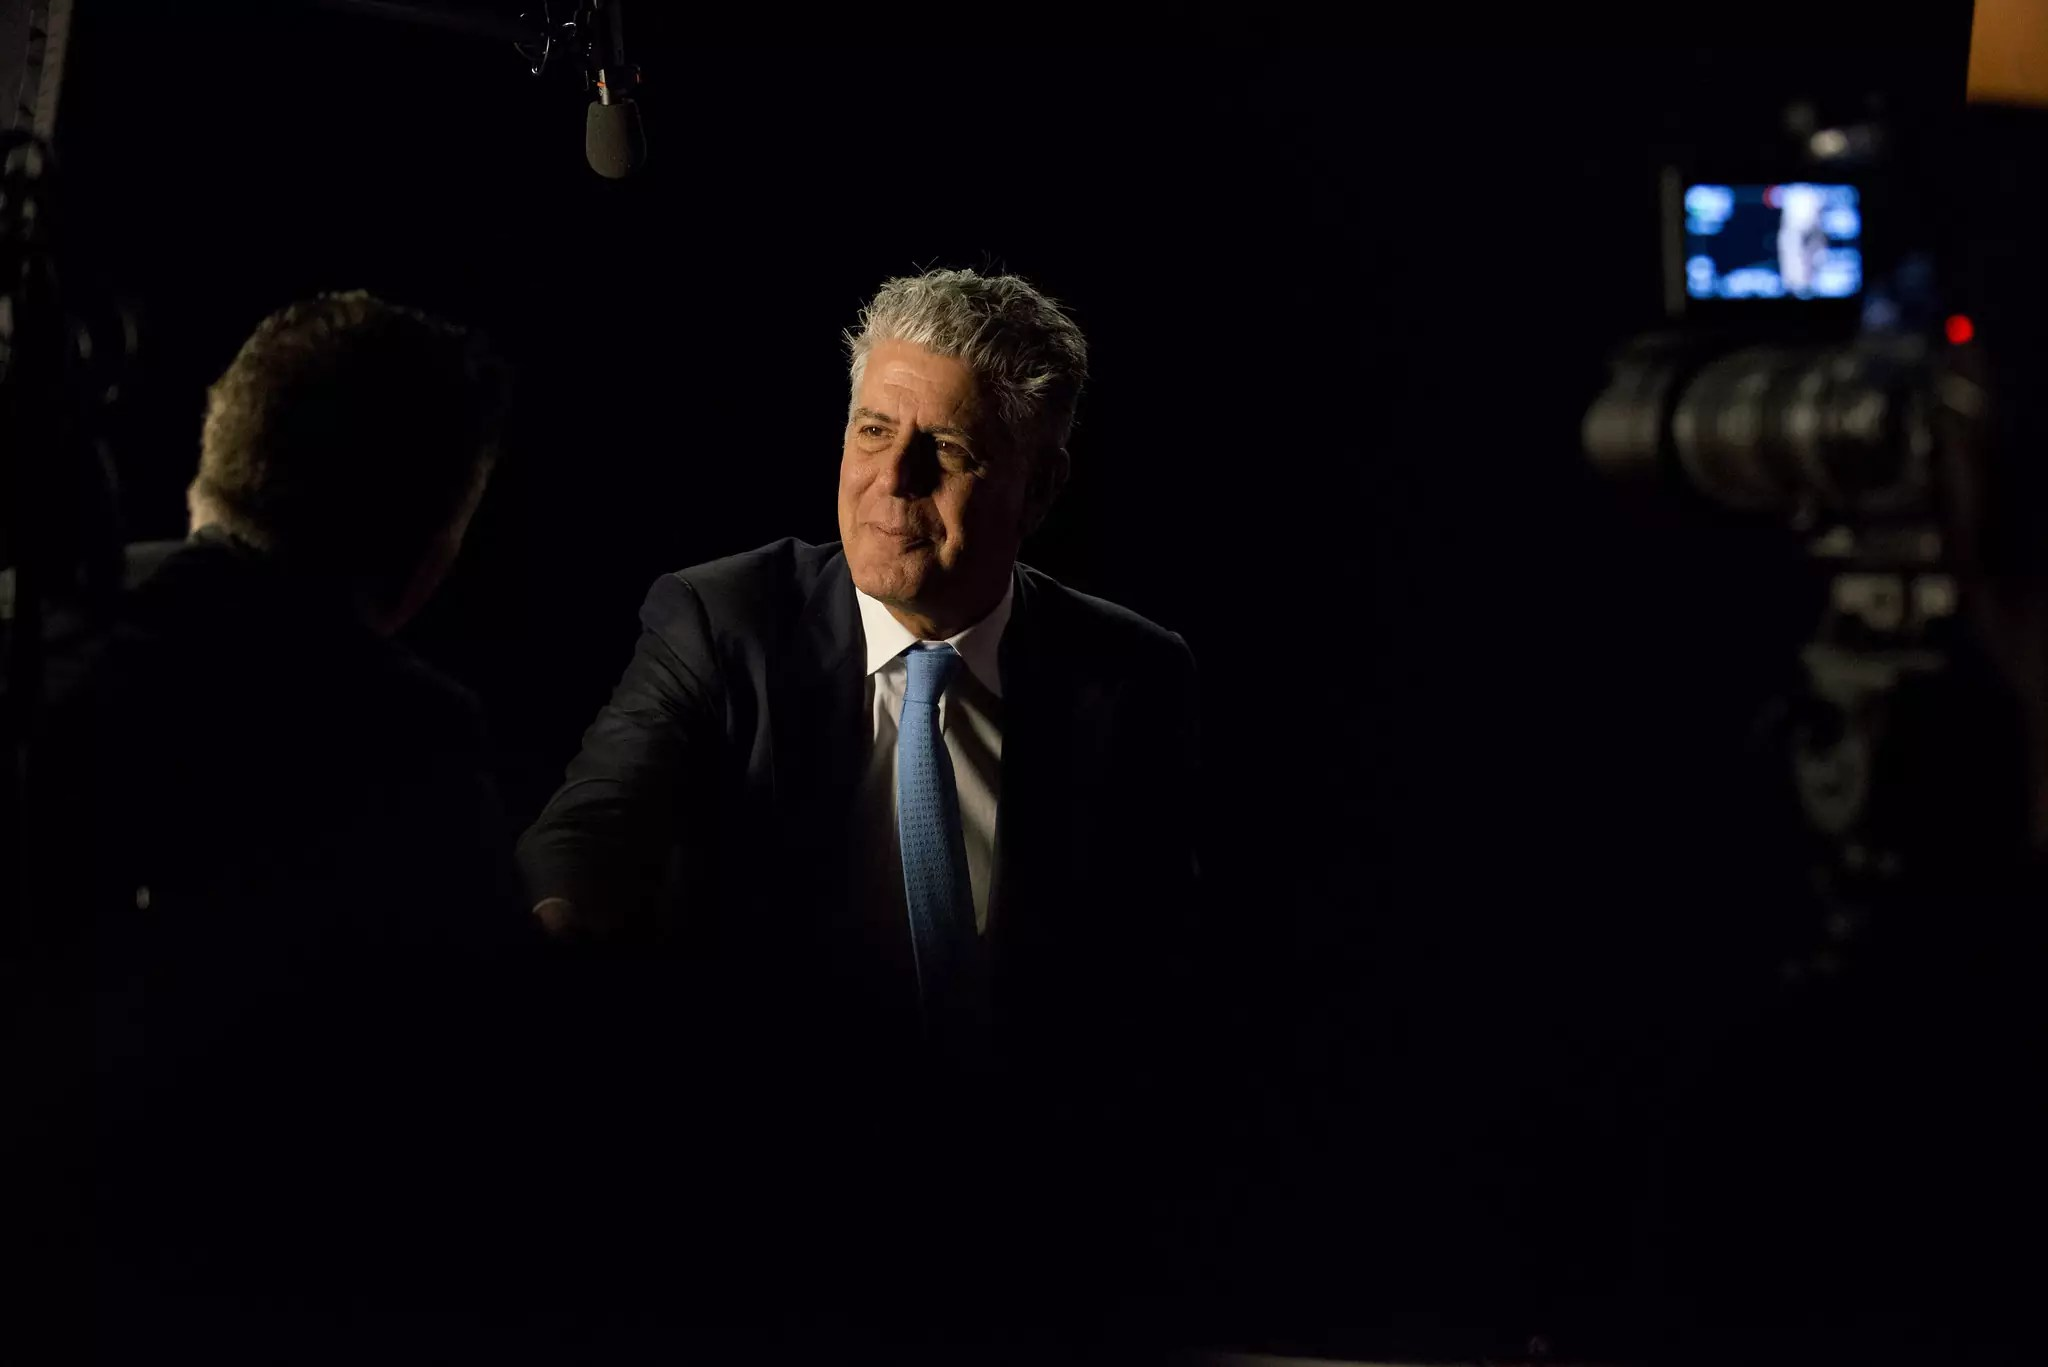 """Anthony Bourdain during the Peabody interview for """"Parts Unknown."""" - photo by Peabody Awards under CC BY 2.0"""